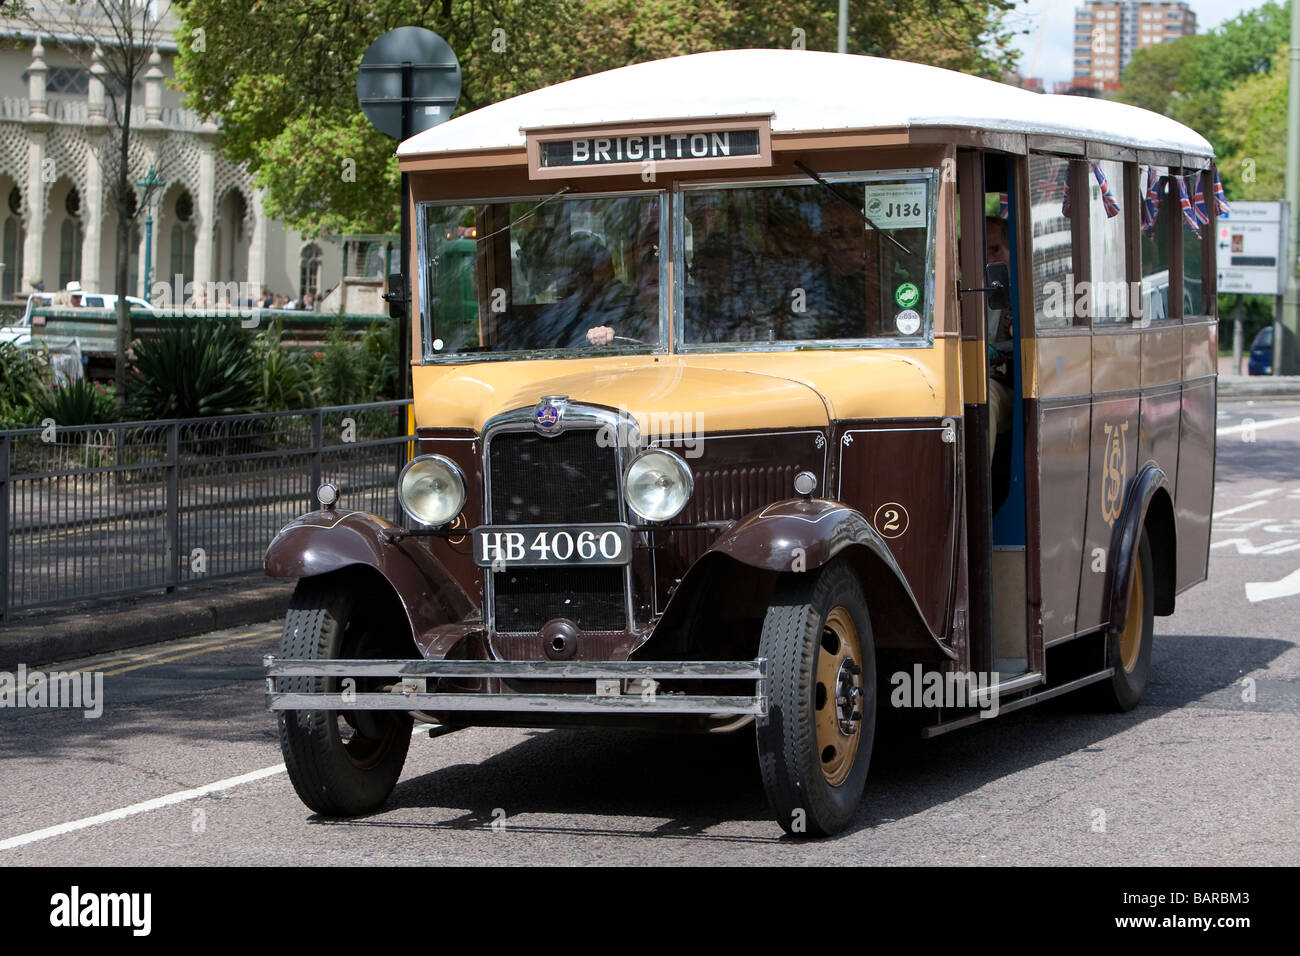 1936 Bedford WLB bus with 20 seat Davis coach body during vintage commercial vehicle rally, Brighton. - Stock Image